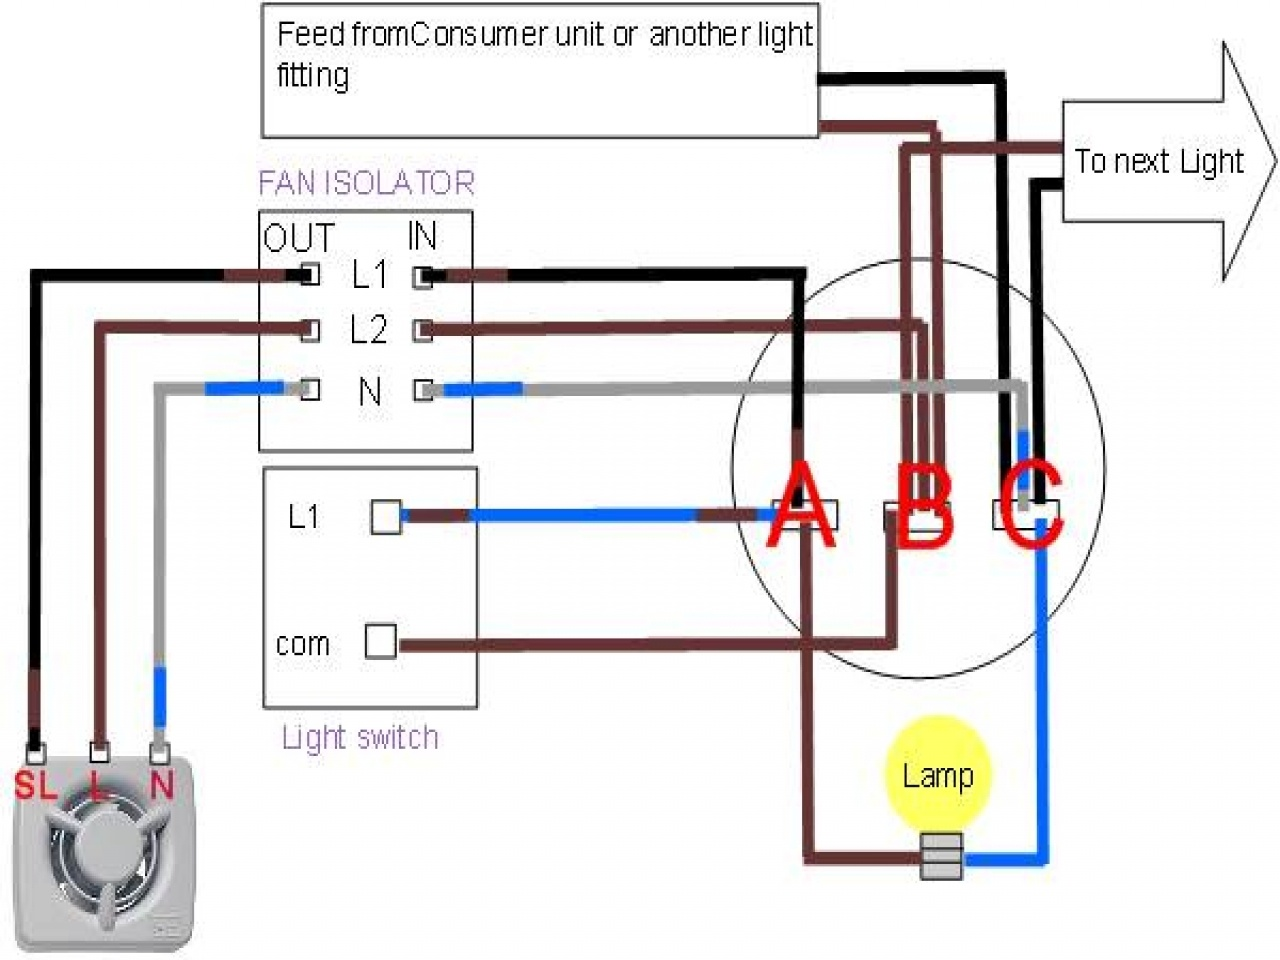 A Bath Fan Light Wiring Diagrams - Utility Trailer Plug Wiring Schematic  for Wiring Diagram Schematics | Bathroom Fan Light Wire Diagram |  | Wiring Diagram Schematics